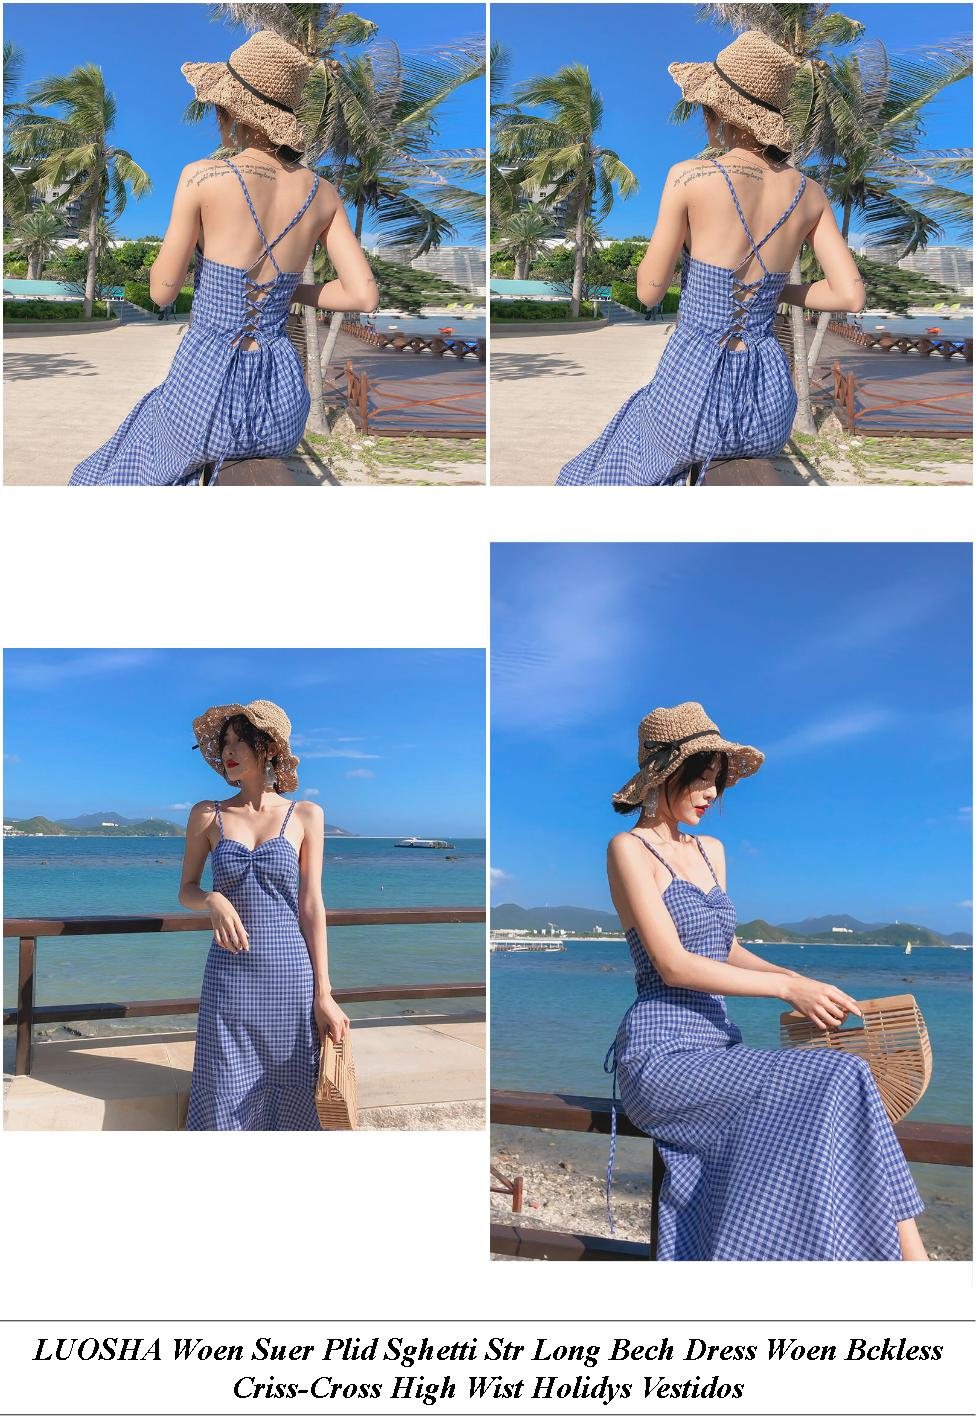 Monsoon Dresses - Huge Sale - Dress For Women - Cheap Online Shopping Sites For Clothes